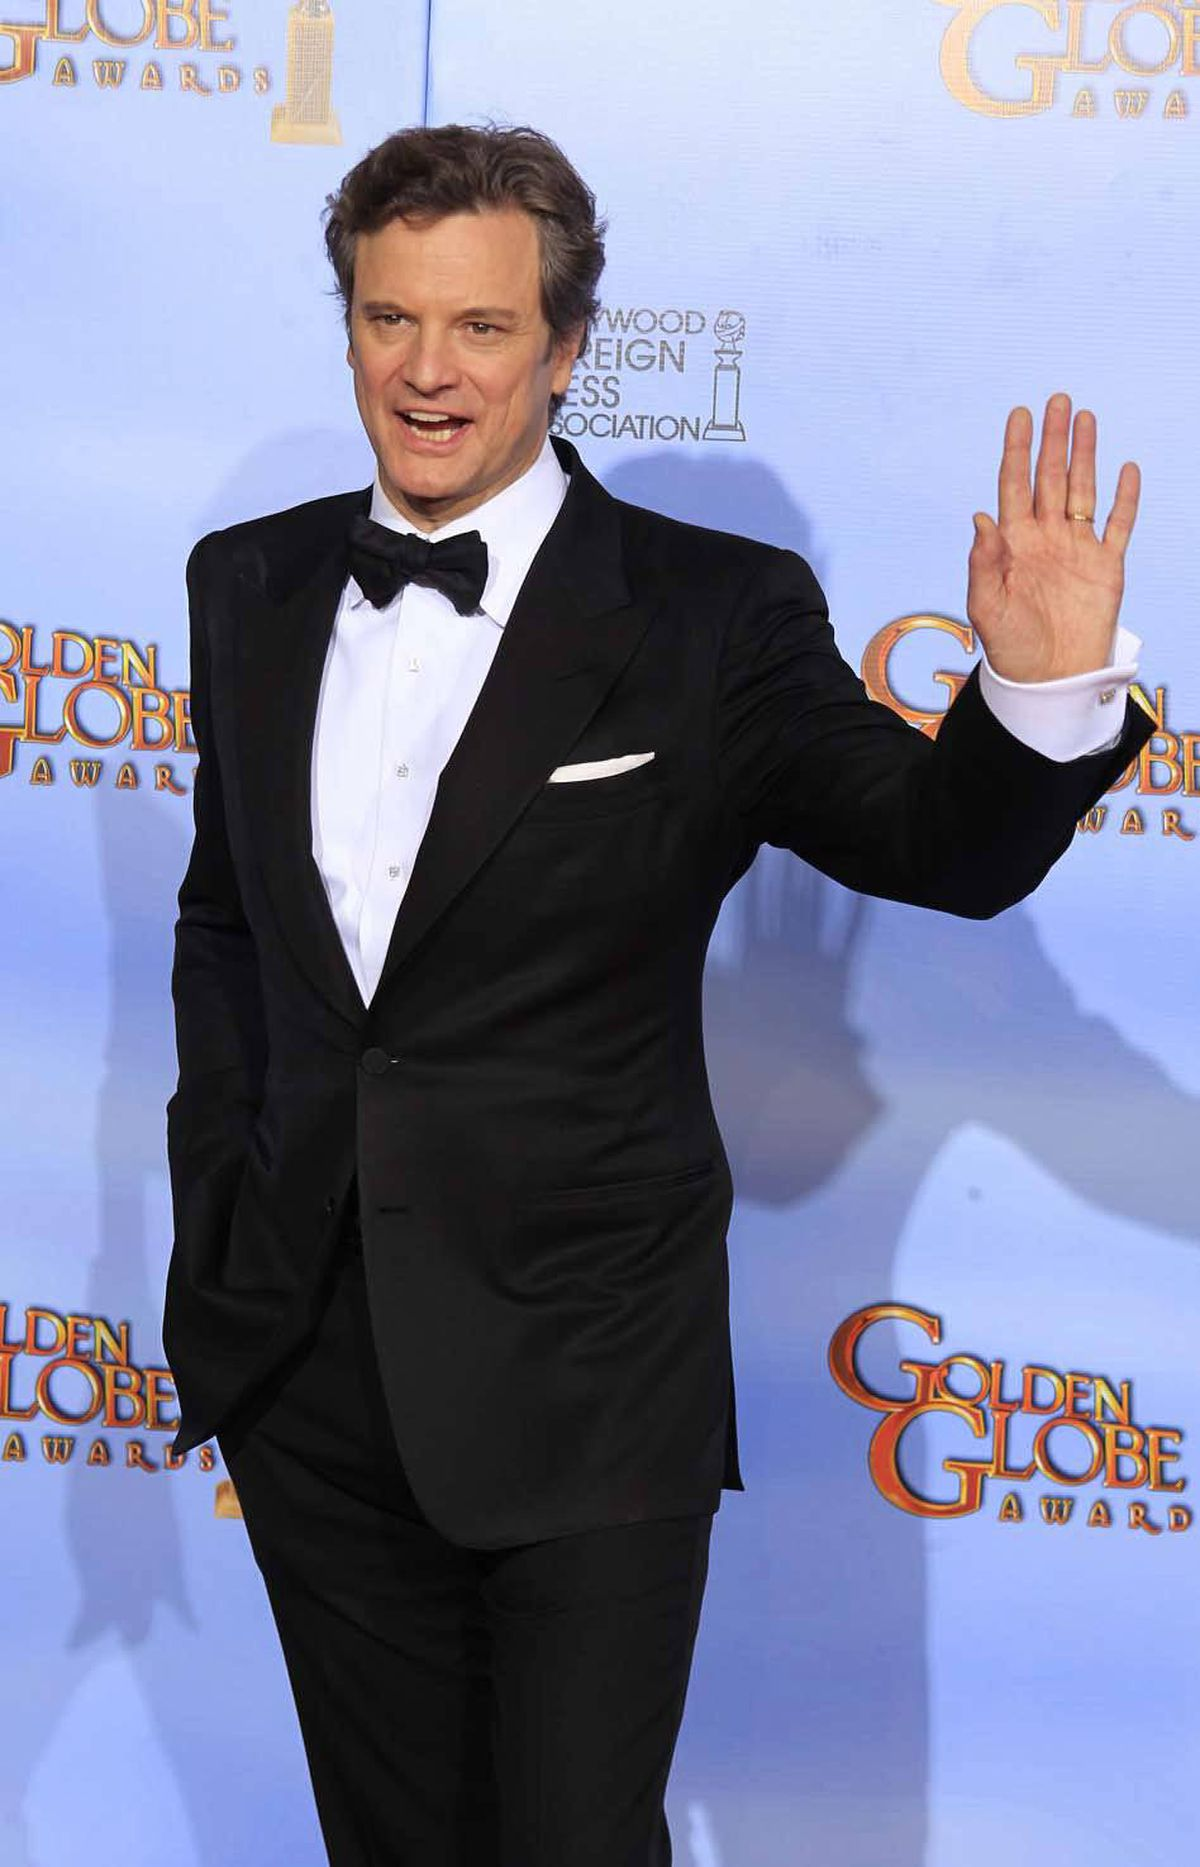 """Stop torturing that poor animal!"" demands Colin Firth at the Golden Globe Awards in Beverly Hills on Sunday."